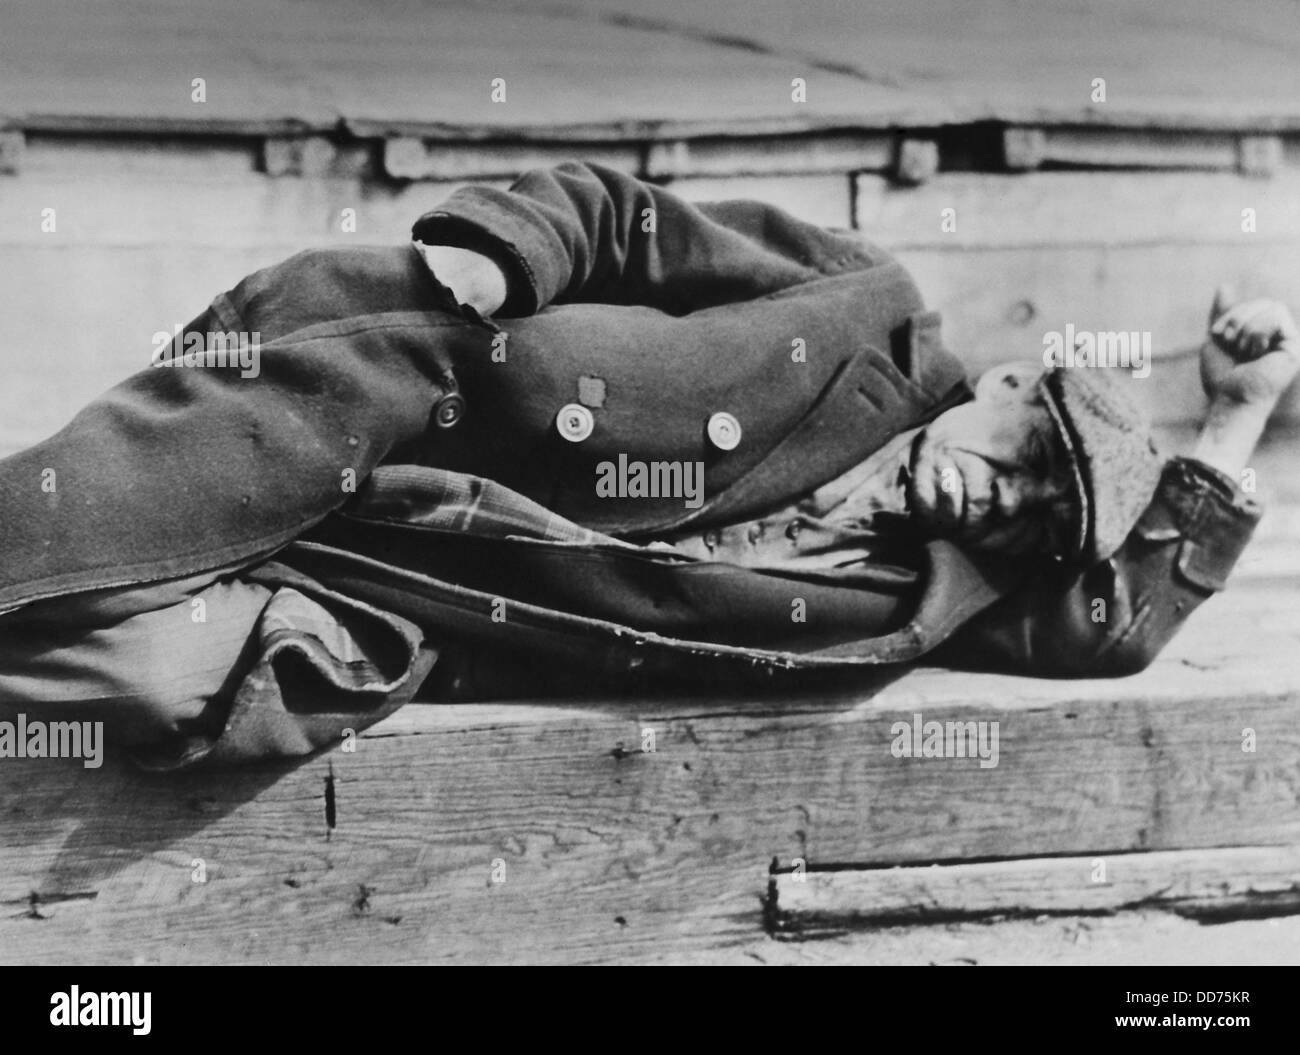 Man sleeping on the NYC docks, ca. 1930-31, by Lewis Hine. He wears a three piece suit under his worn overcoat, - Stock Image